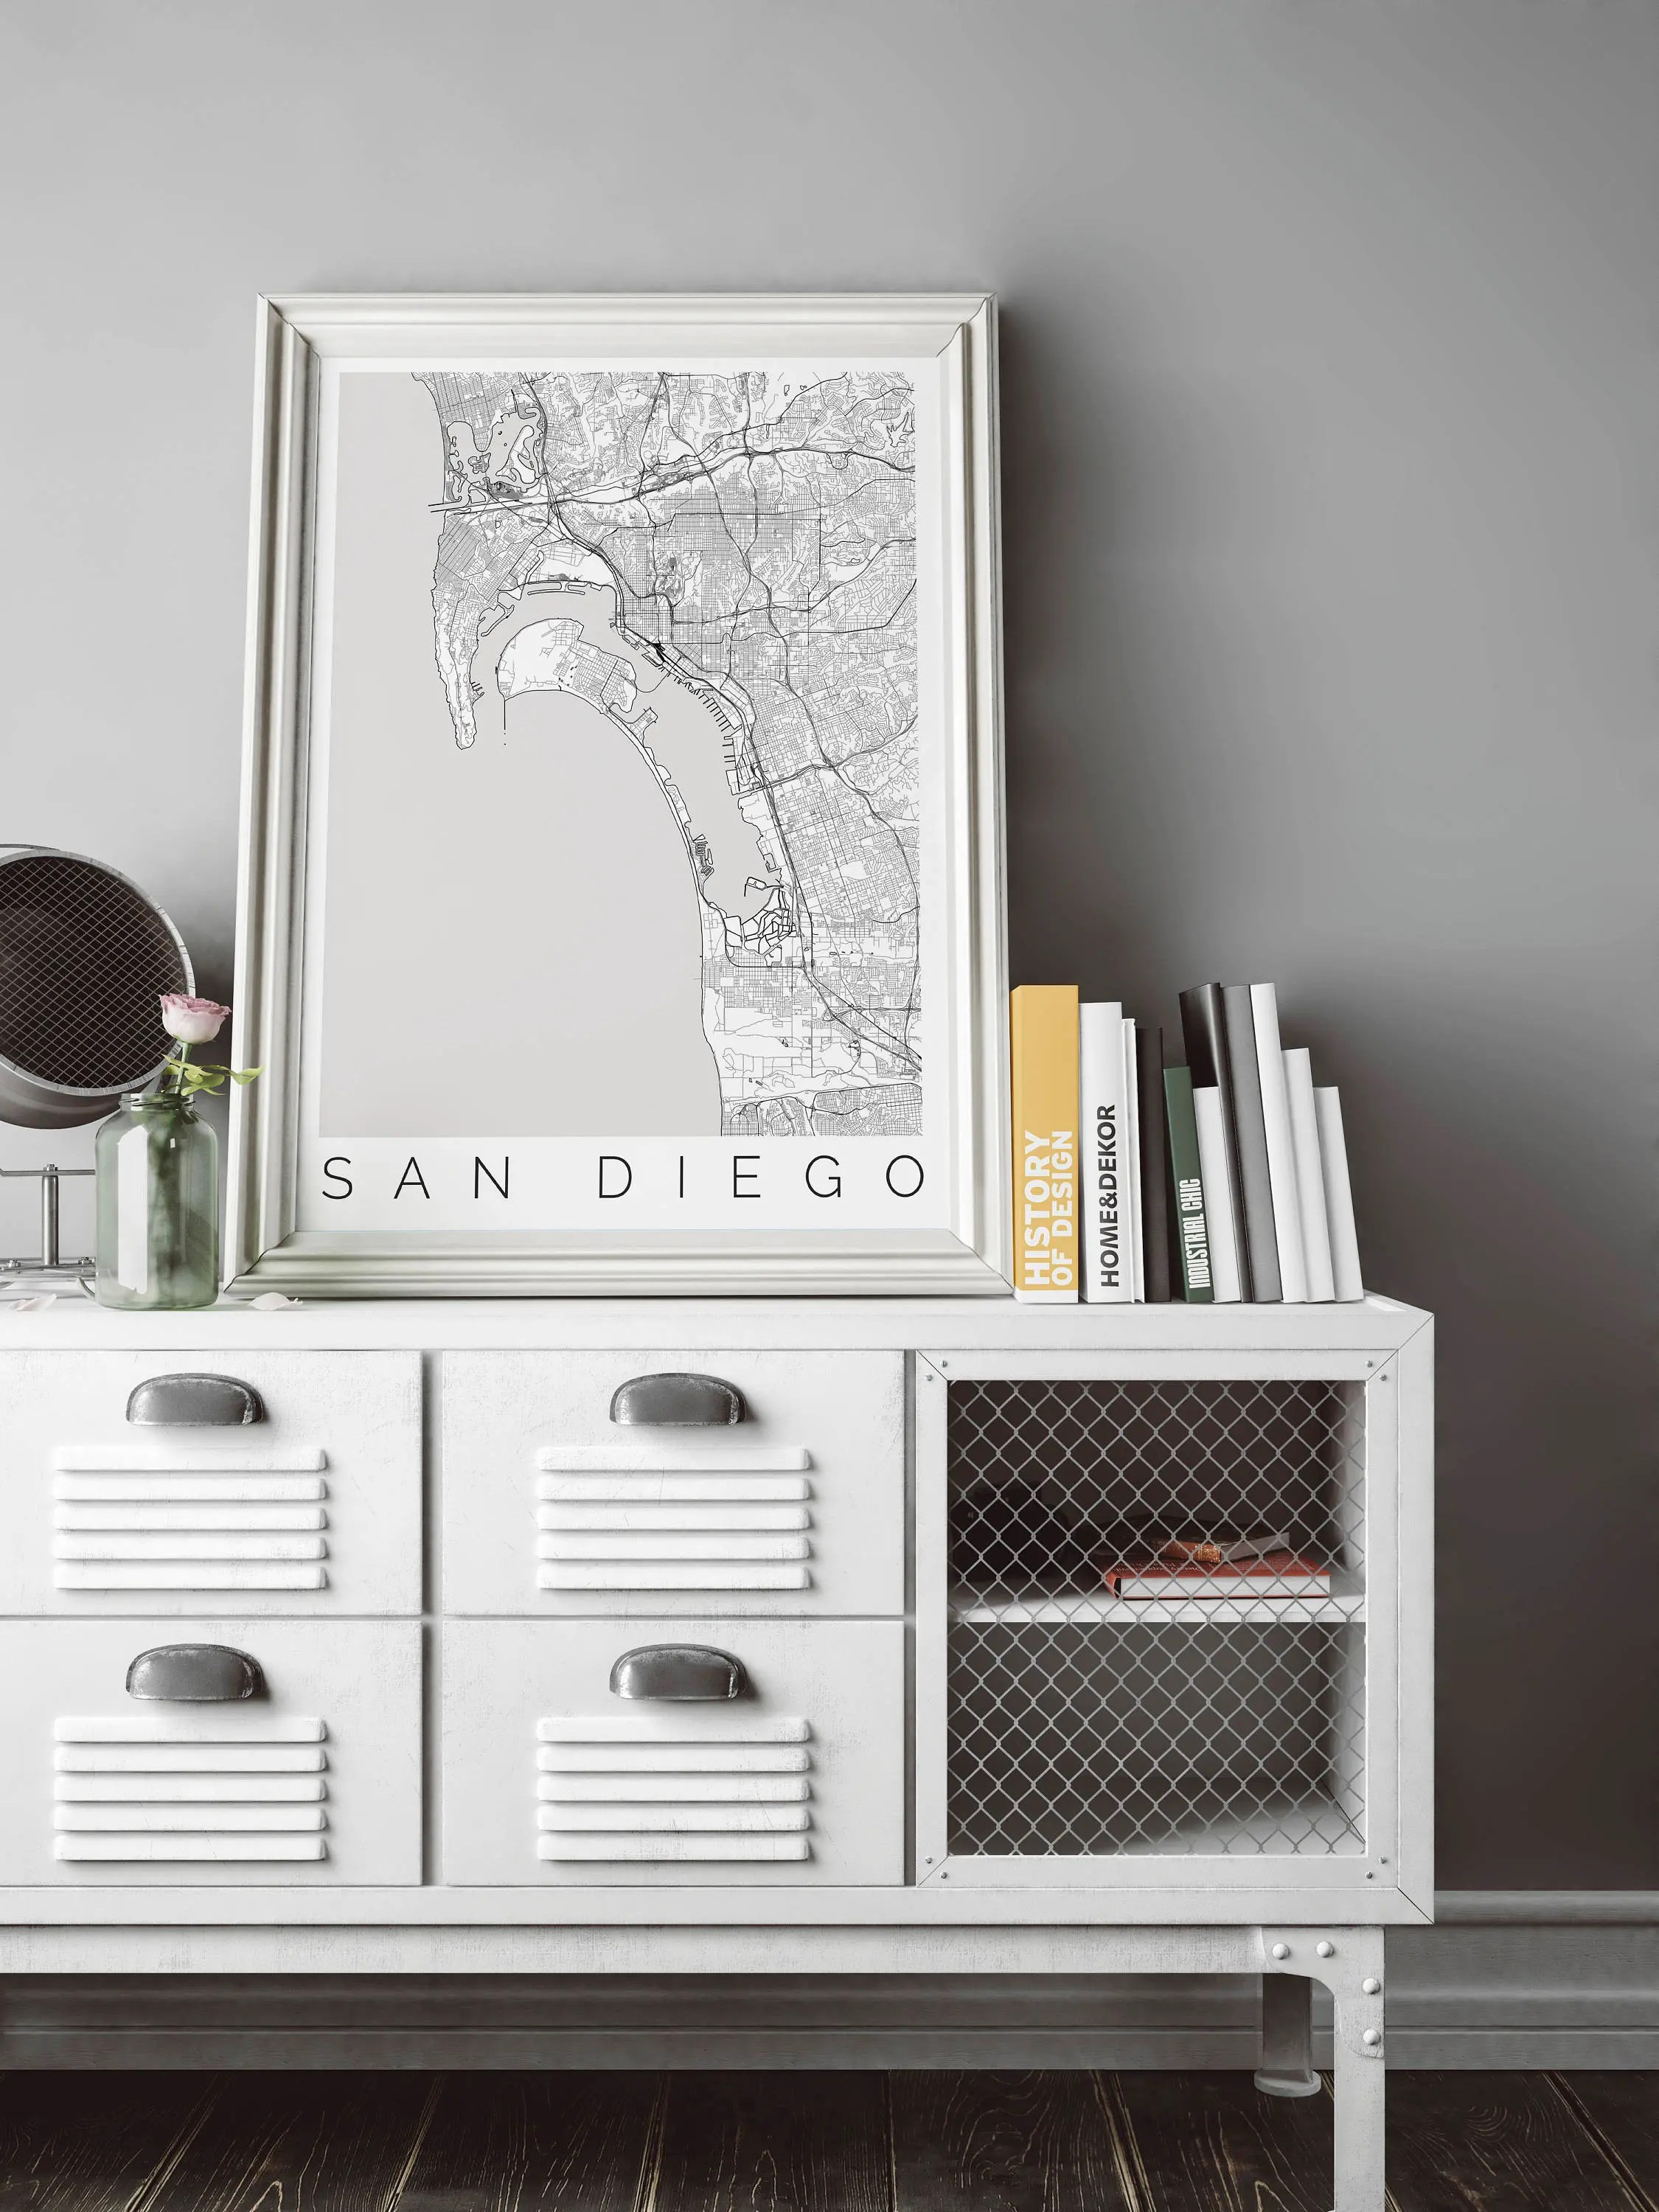 Ikea San Diego Hours Map Of San Diego Ca Fits Ikea Frame Home Decor Wall Art Wanderlust San Diego Print Travel Map Housewarming Long Distance Love